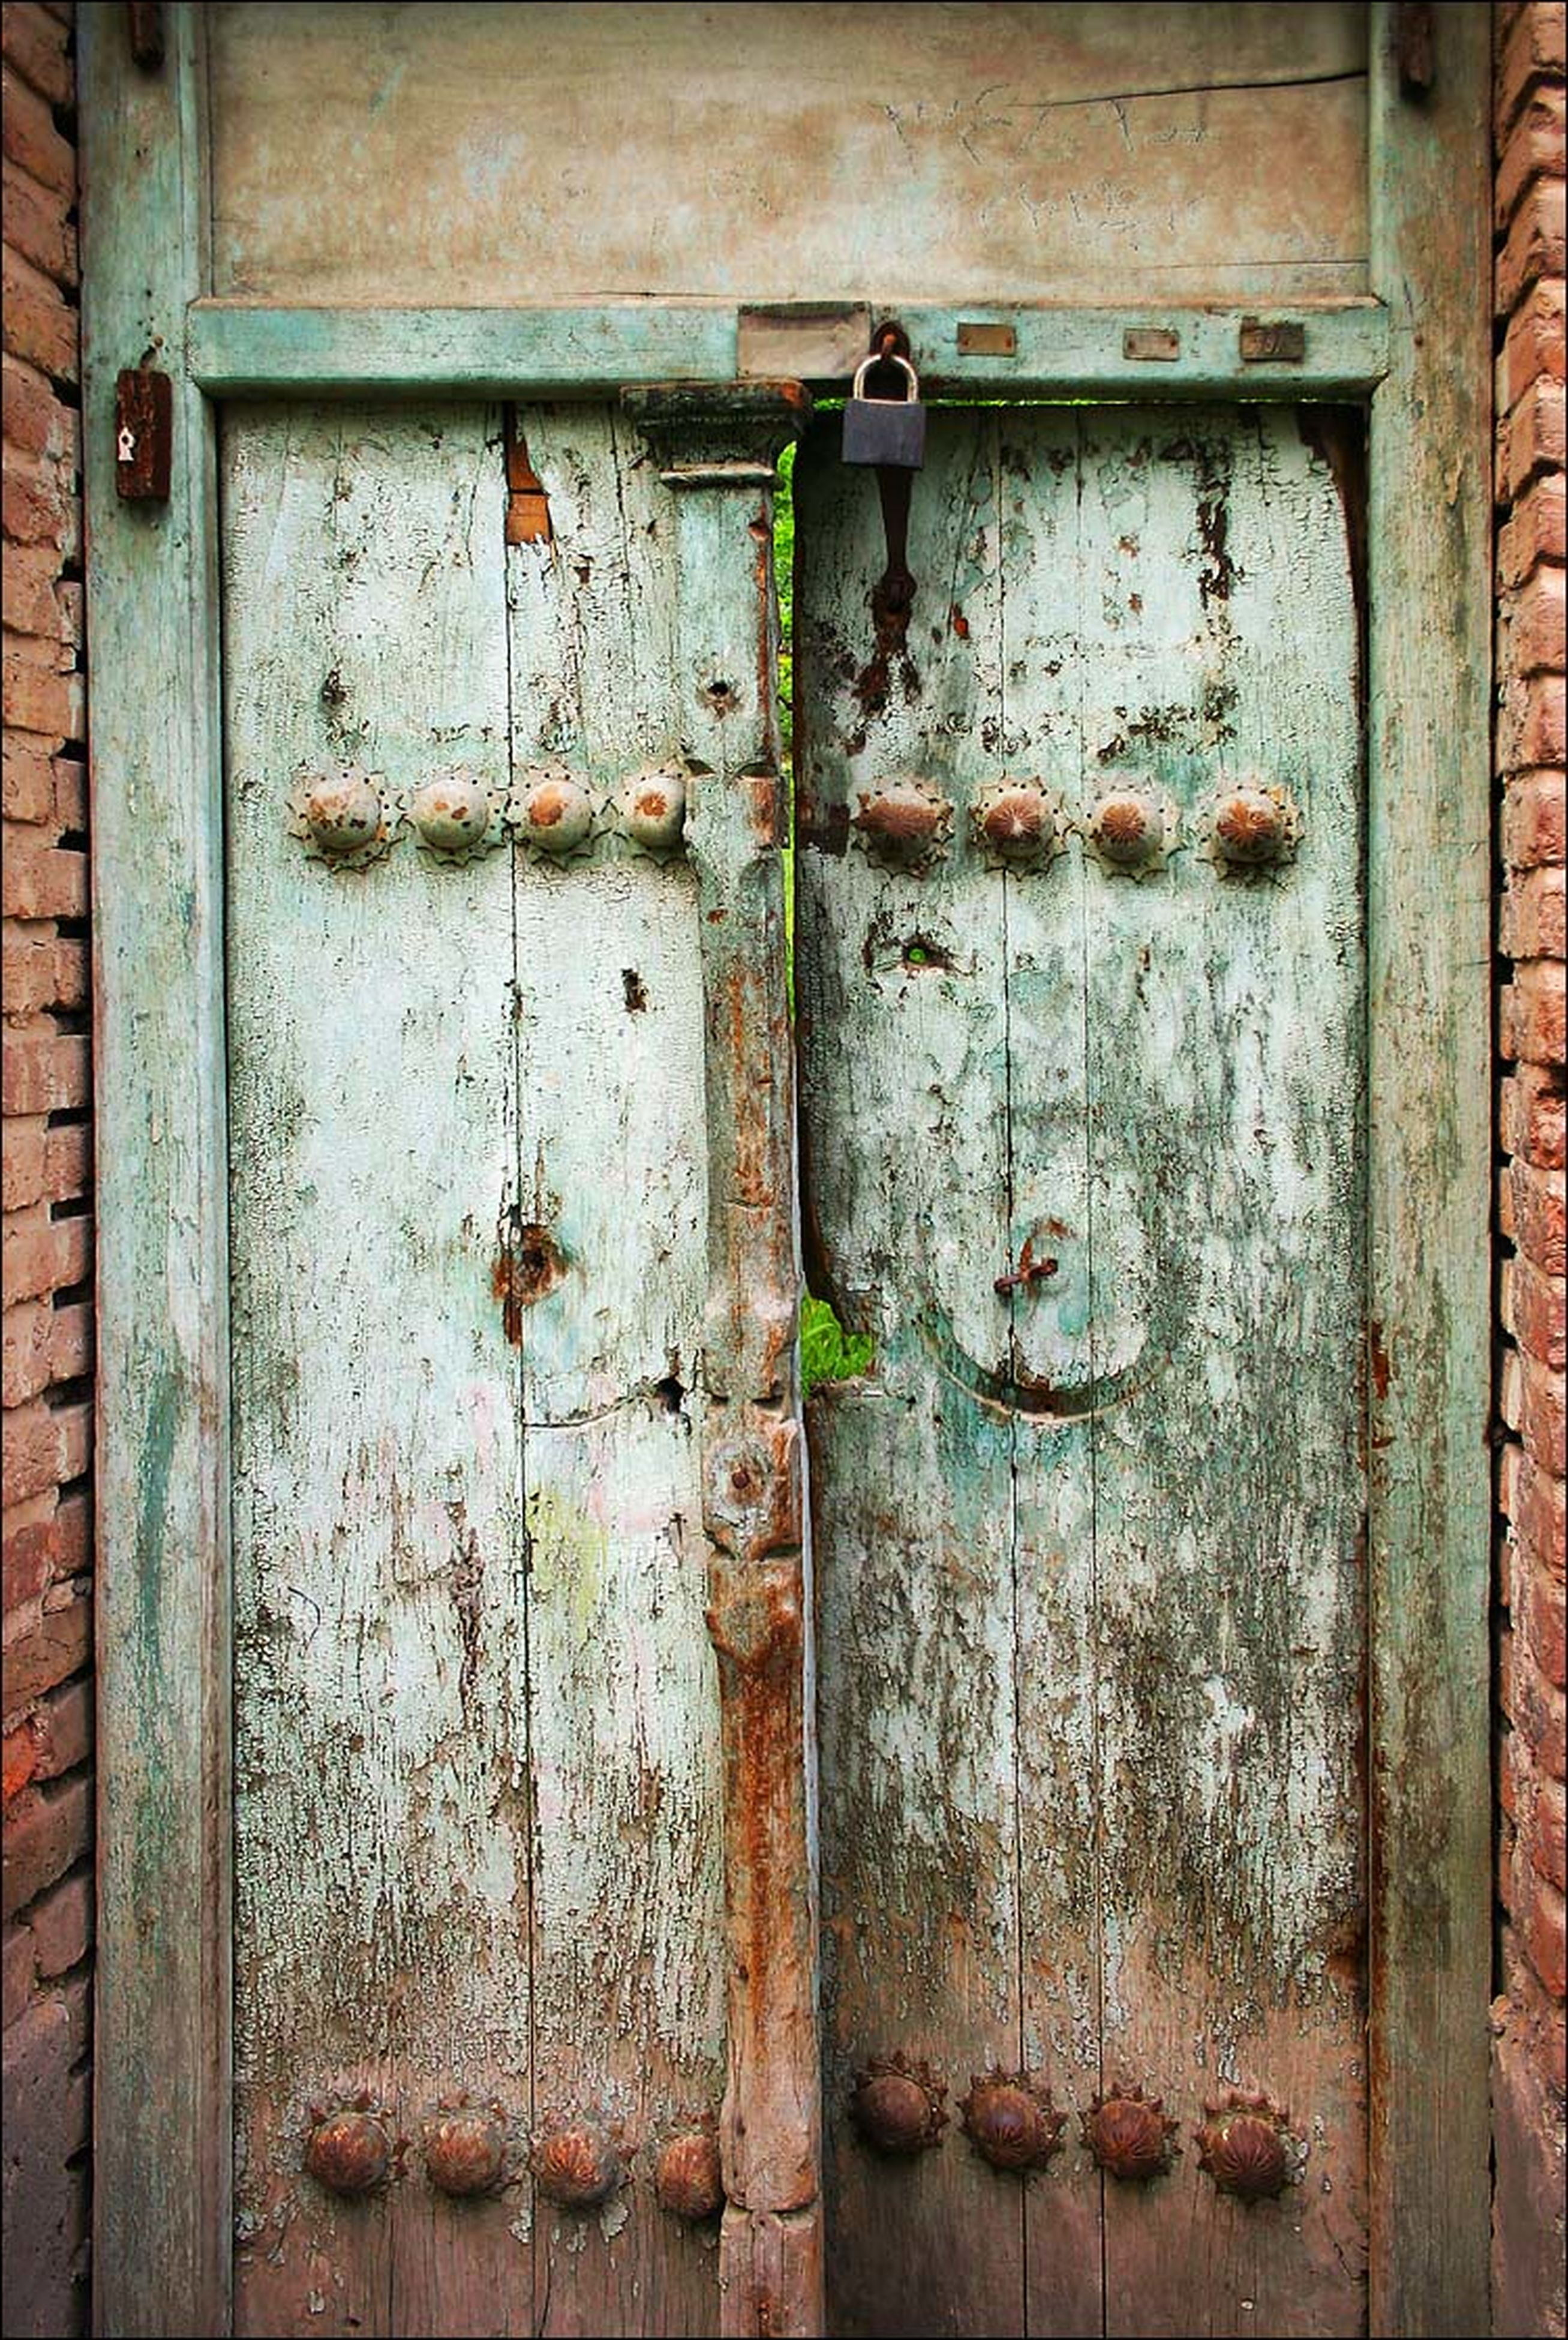 old, weathered, door, wood - material, built structure, closed, abandoned, architecture, run-down, damaged, rusty, deterioration, obsolete, protection, safety, wooden, metal, close-up, building exterior, full frame